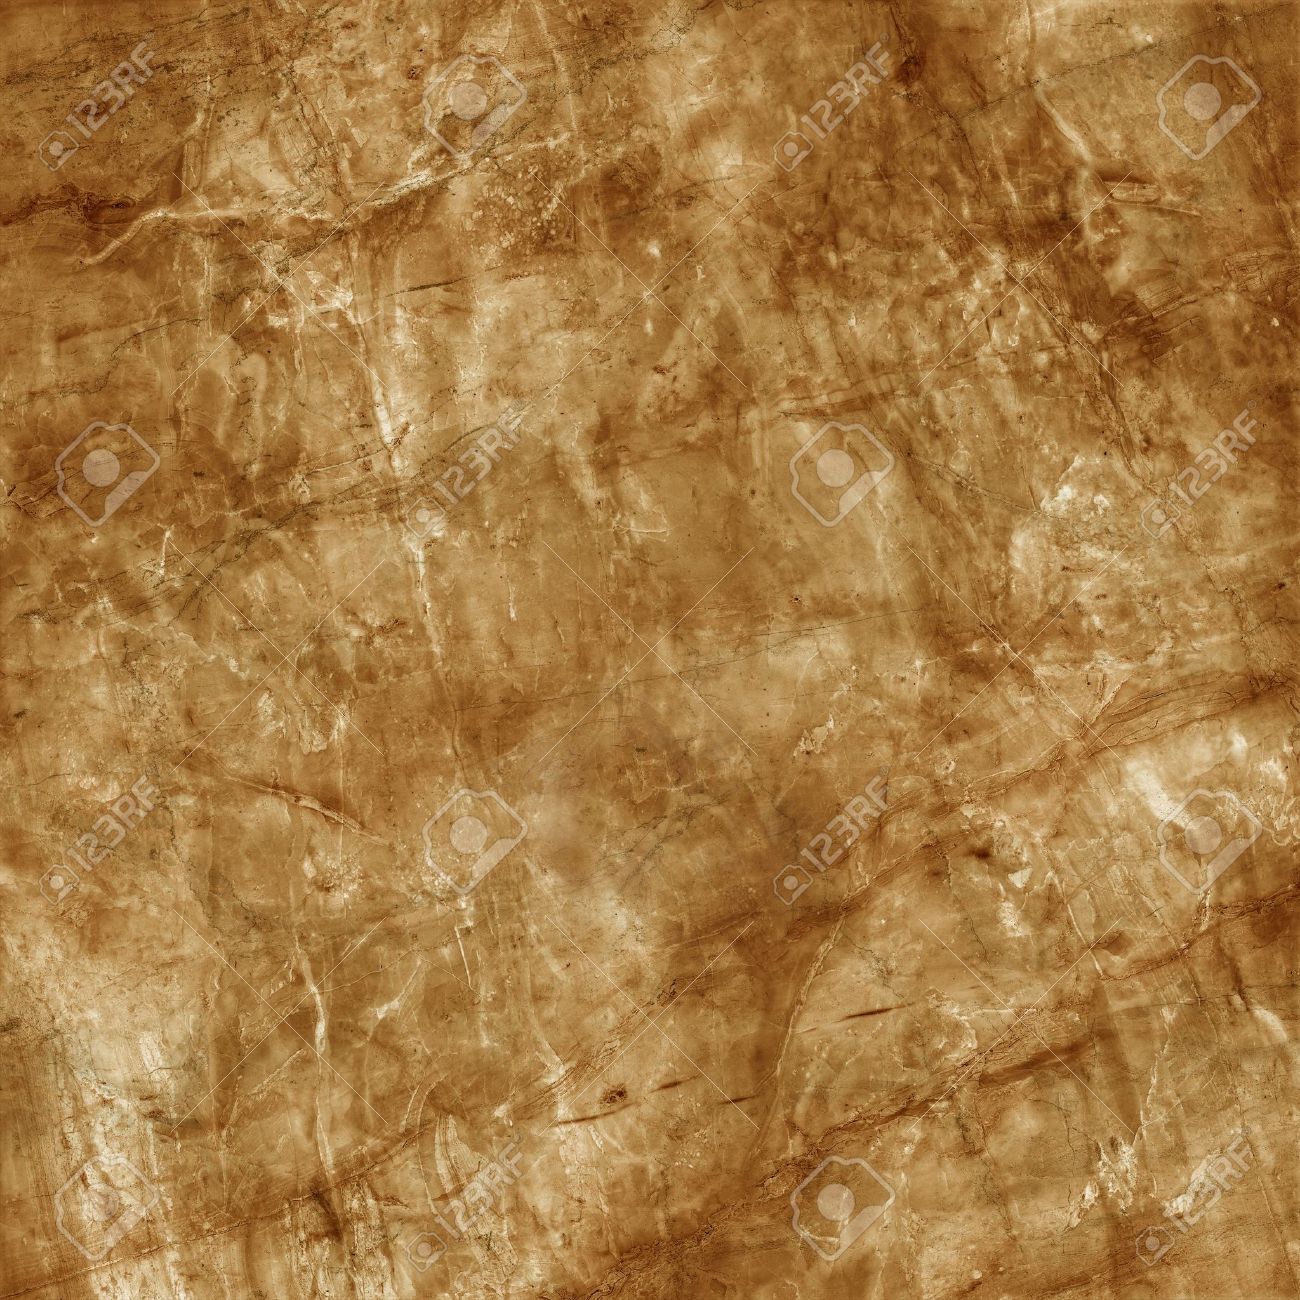 High Resolution Brown Marble Background Marble Texture Stock Photo Picture And Royalty Free Image Image 9187247